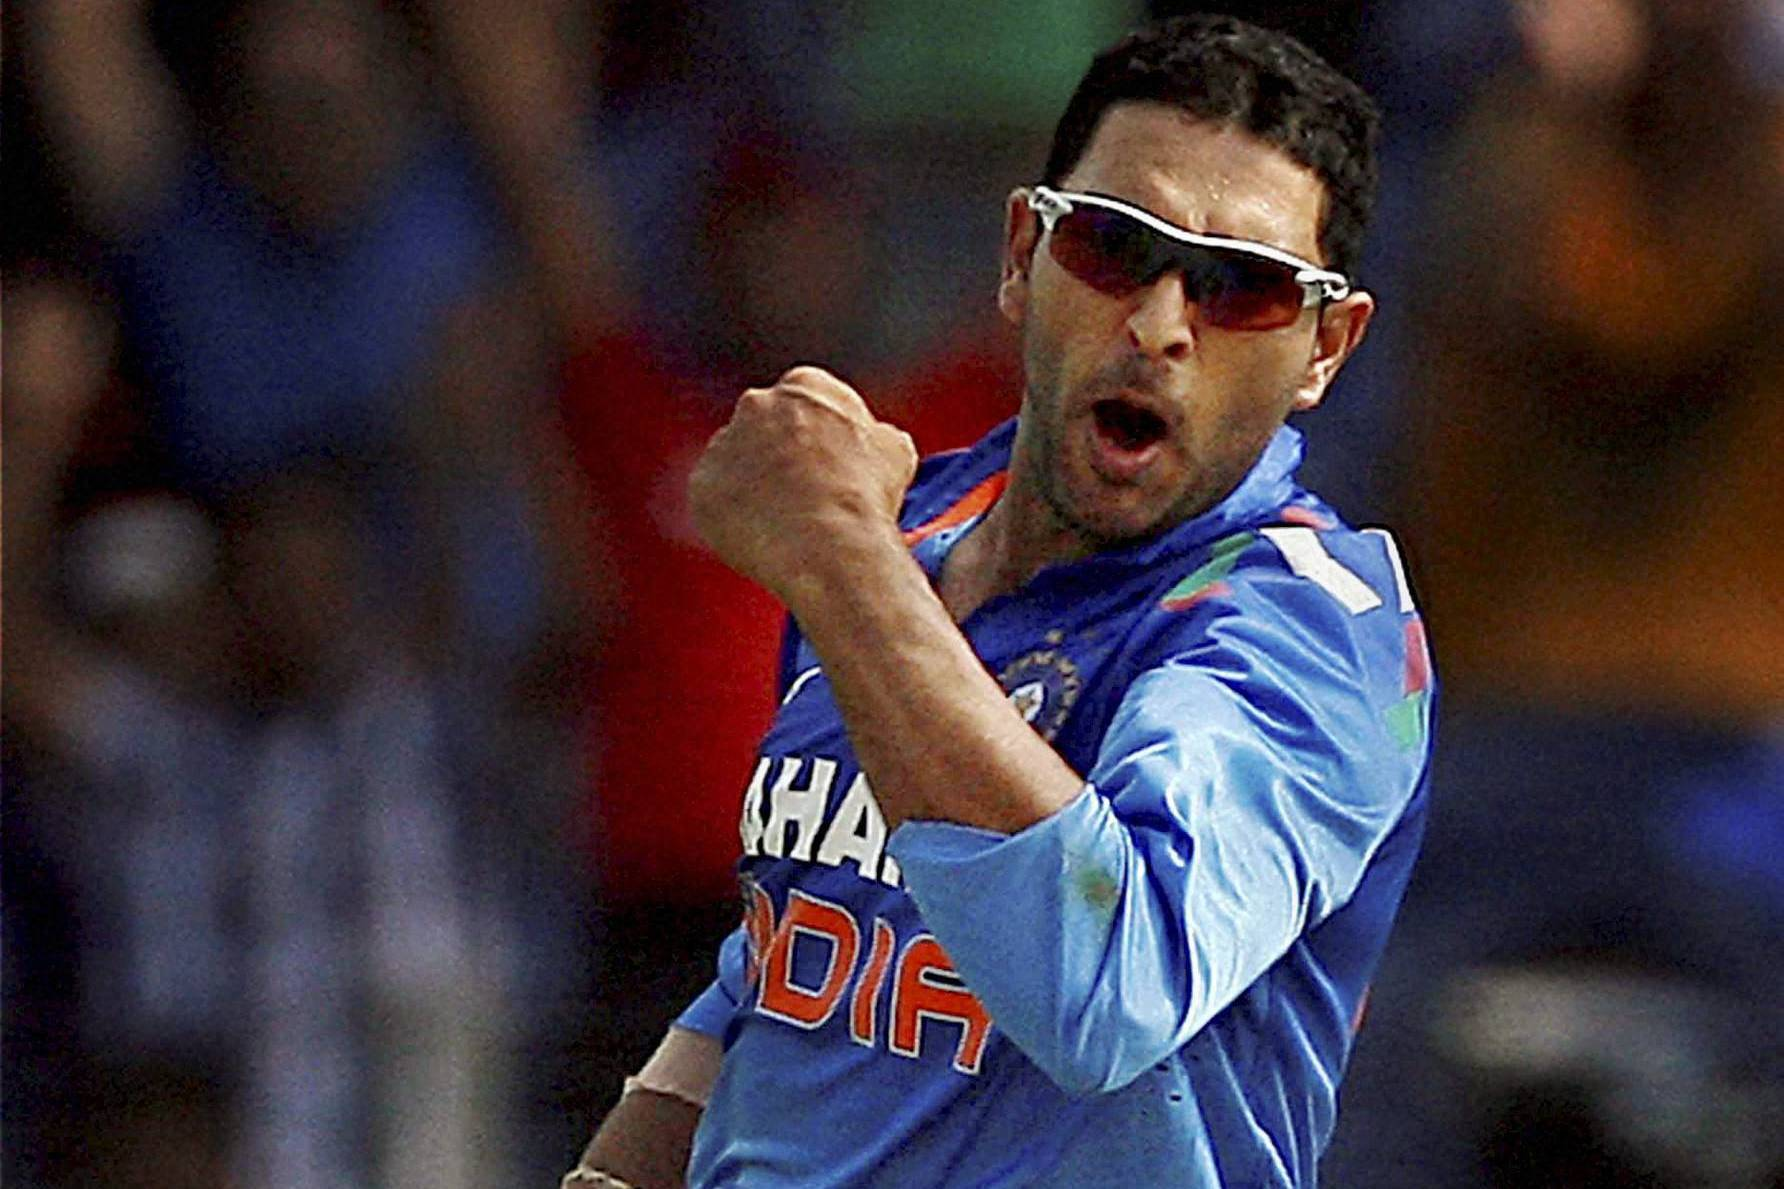 Experienced left-handed batsmen Yuvraj Singh and Shikhar Dhawan have been named in a 15-man India squad for the upcoming three-match series.